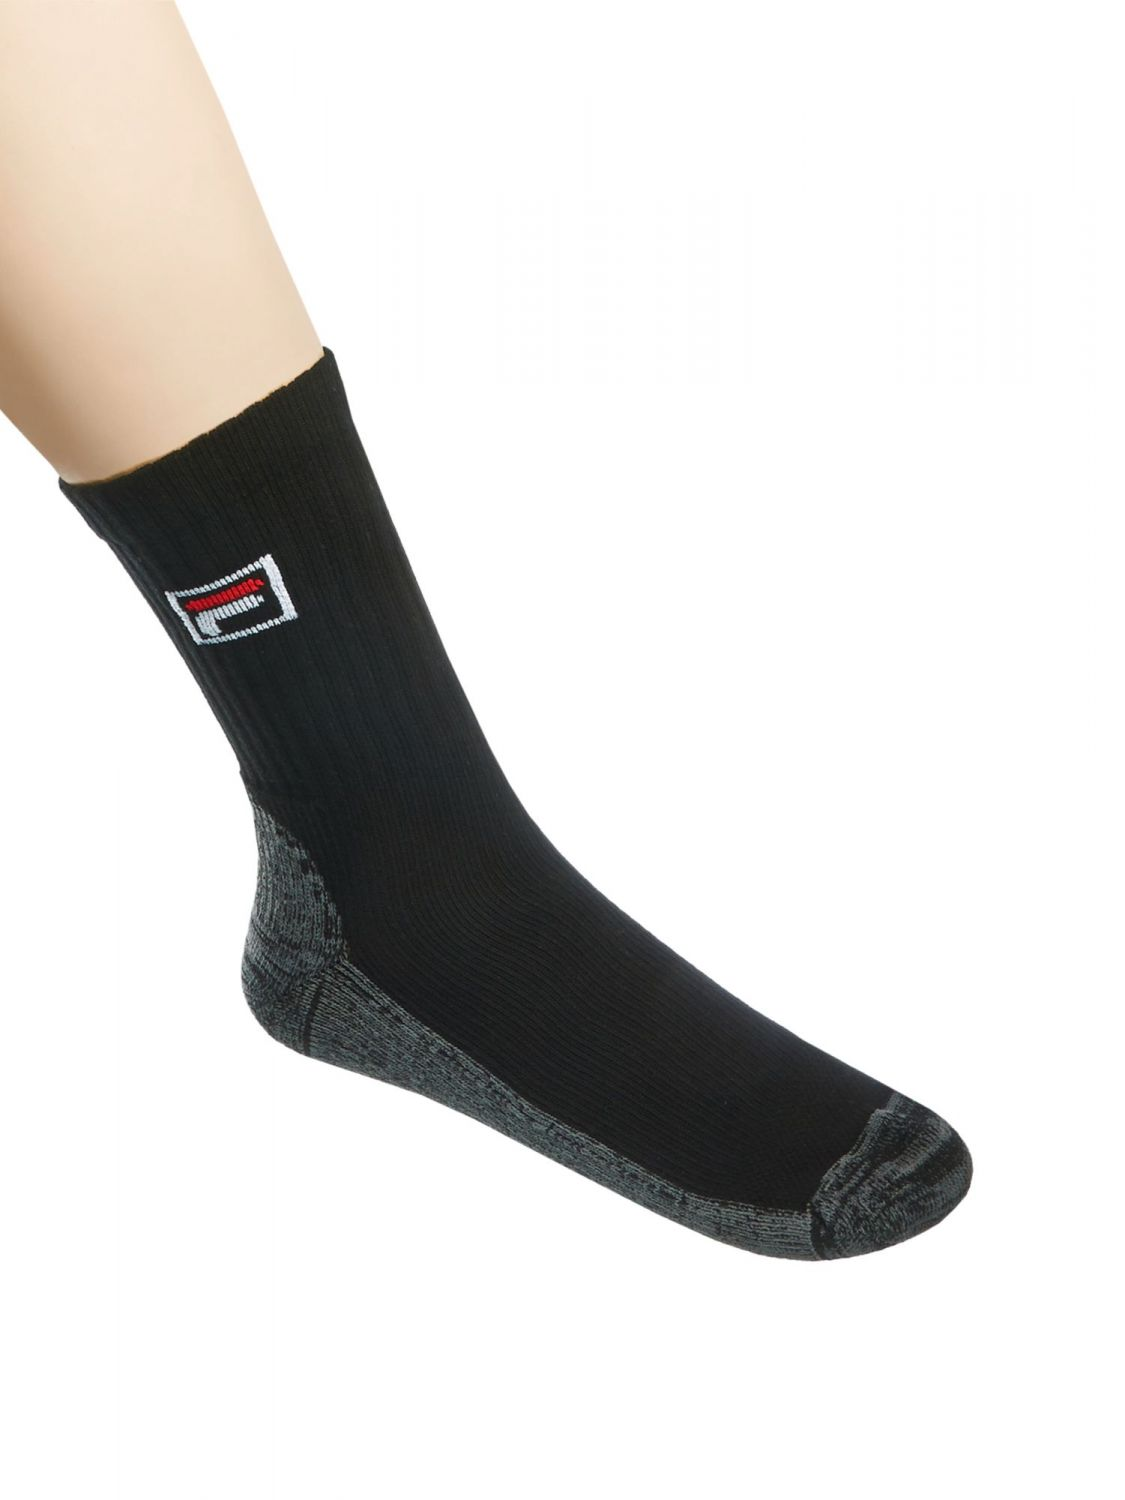 fila sock shoes black